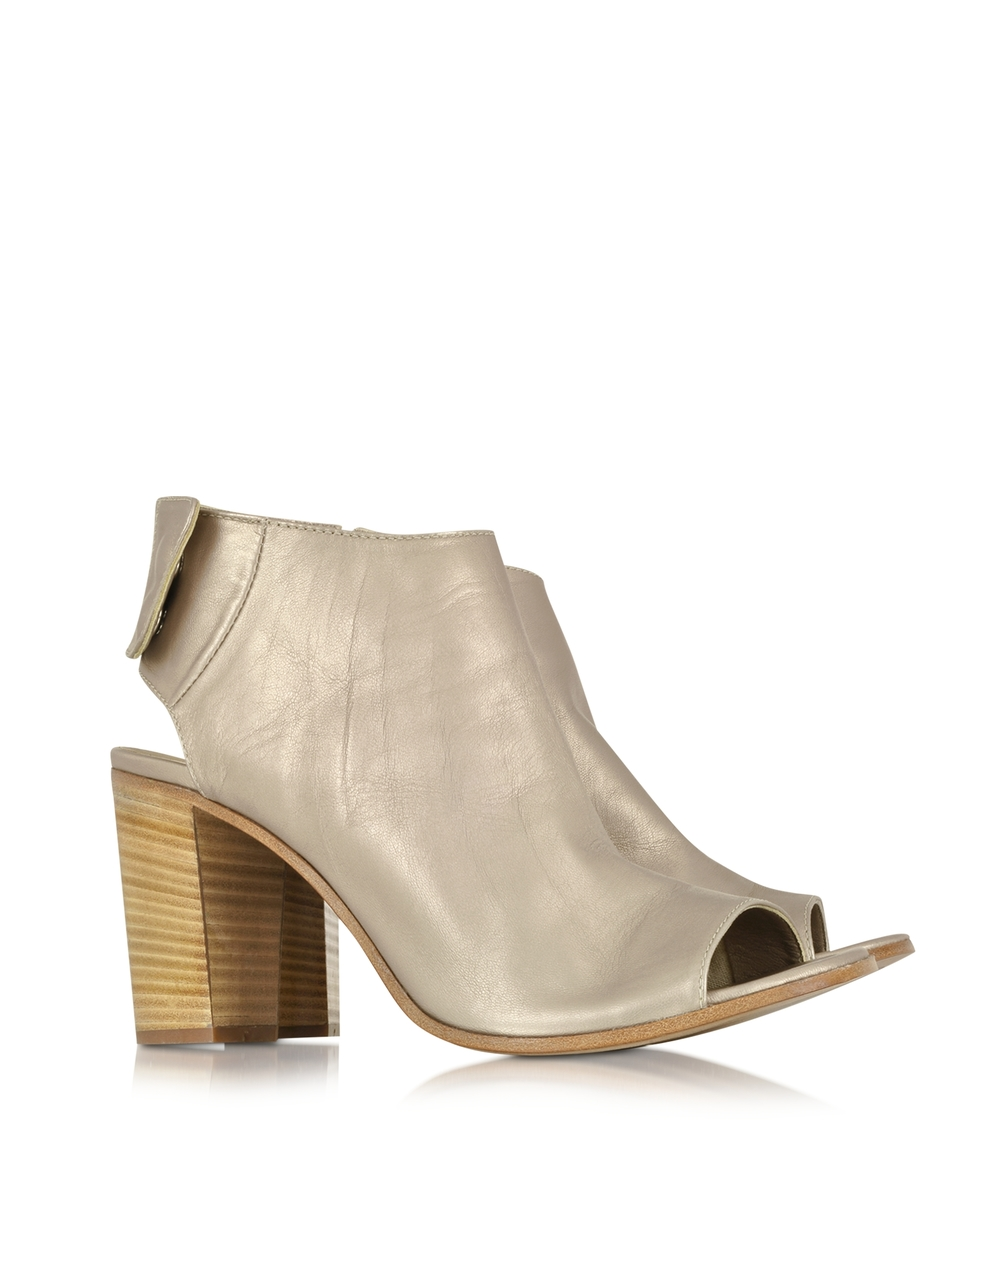 Metallic Leather Bootie | Lemare | A metallic version of my go-to shoe this year | $255